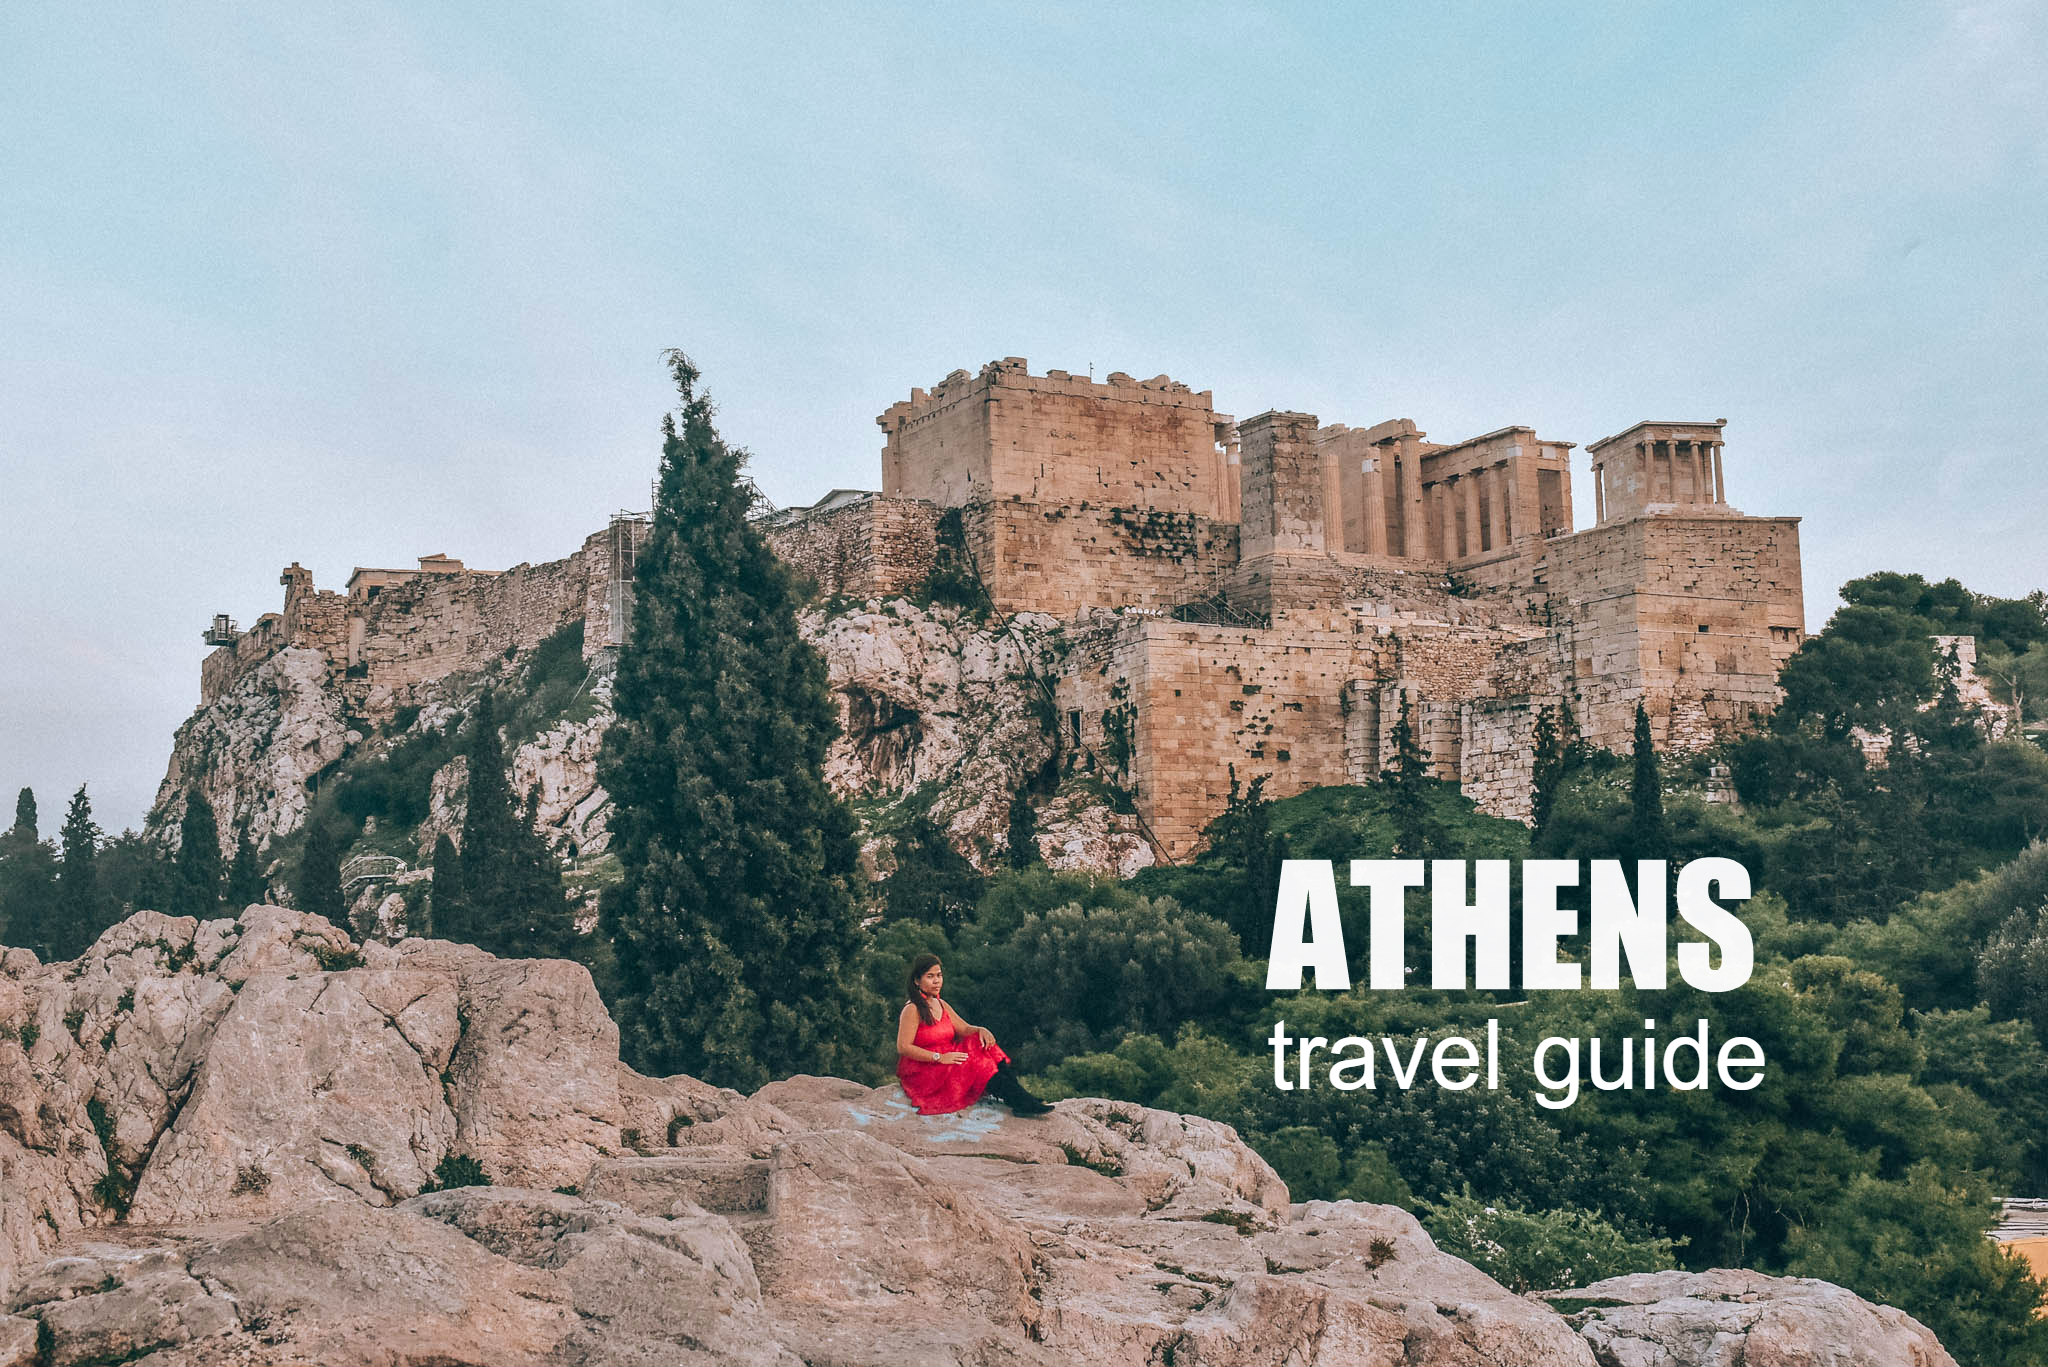 ATHENS TRAVEL GUIDE (ITINERARY + BUDGET)